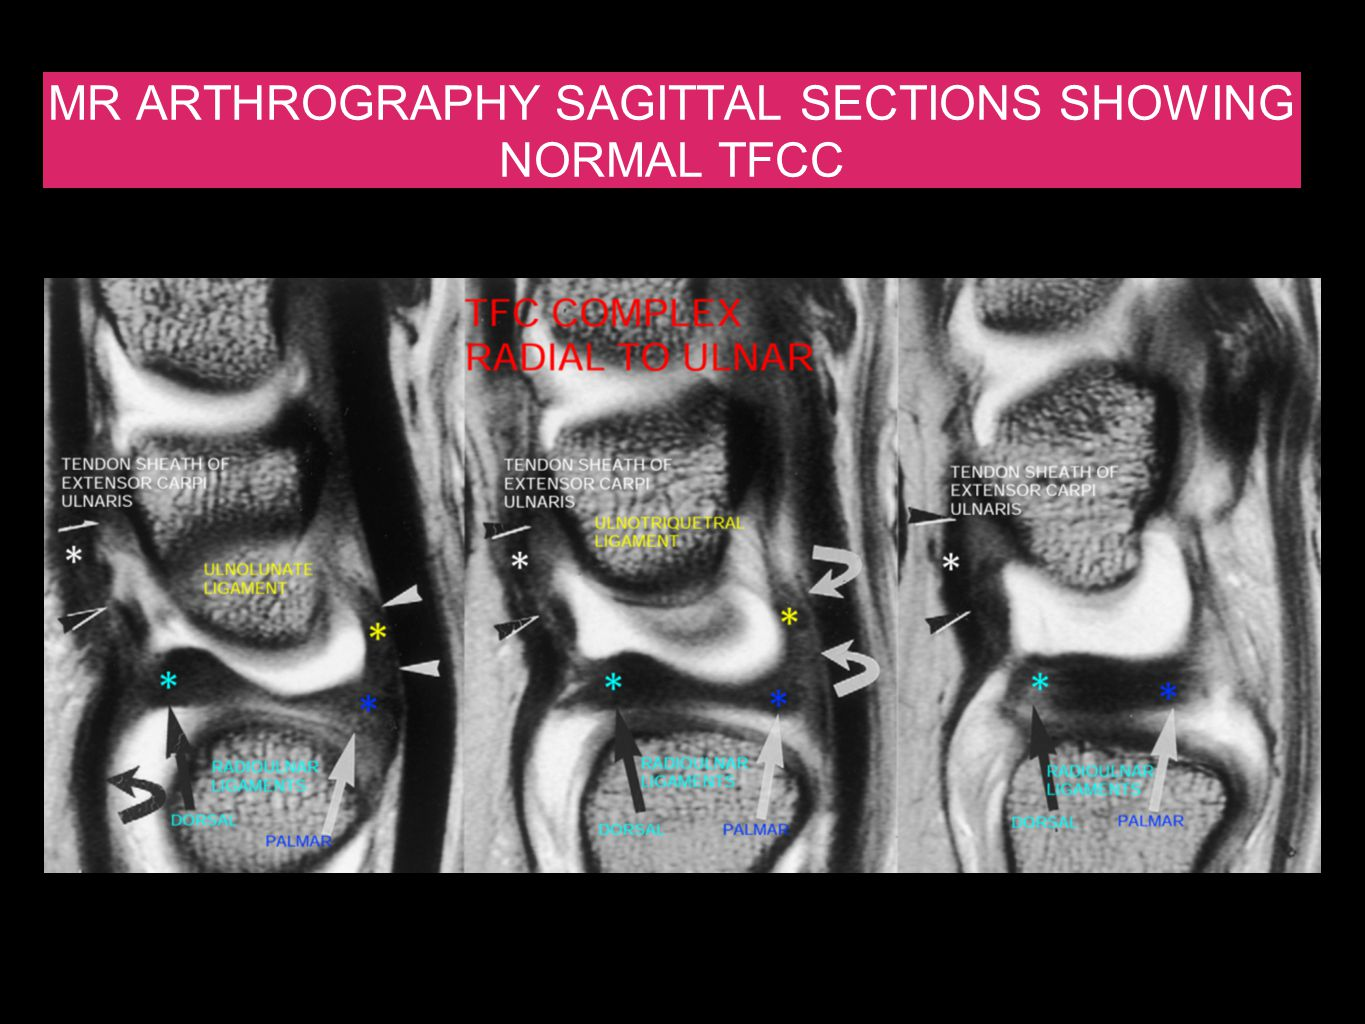 MR ARTHROGRAPHY SAGITTAL SECTIONS SHOWING